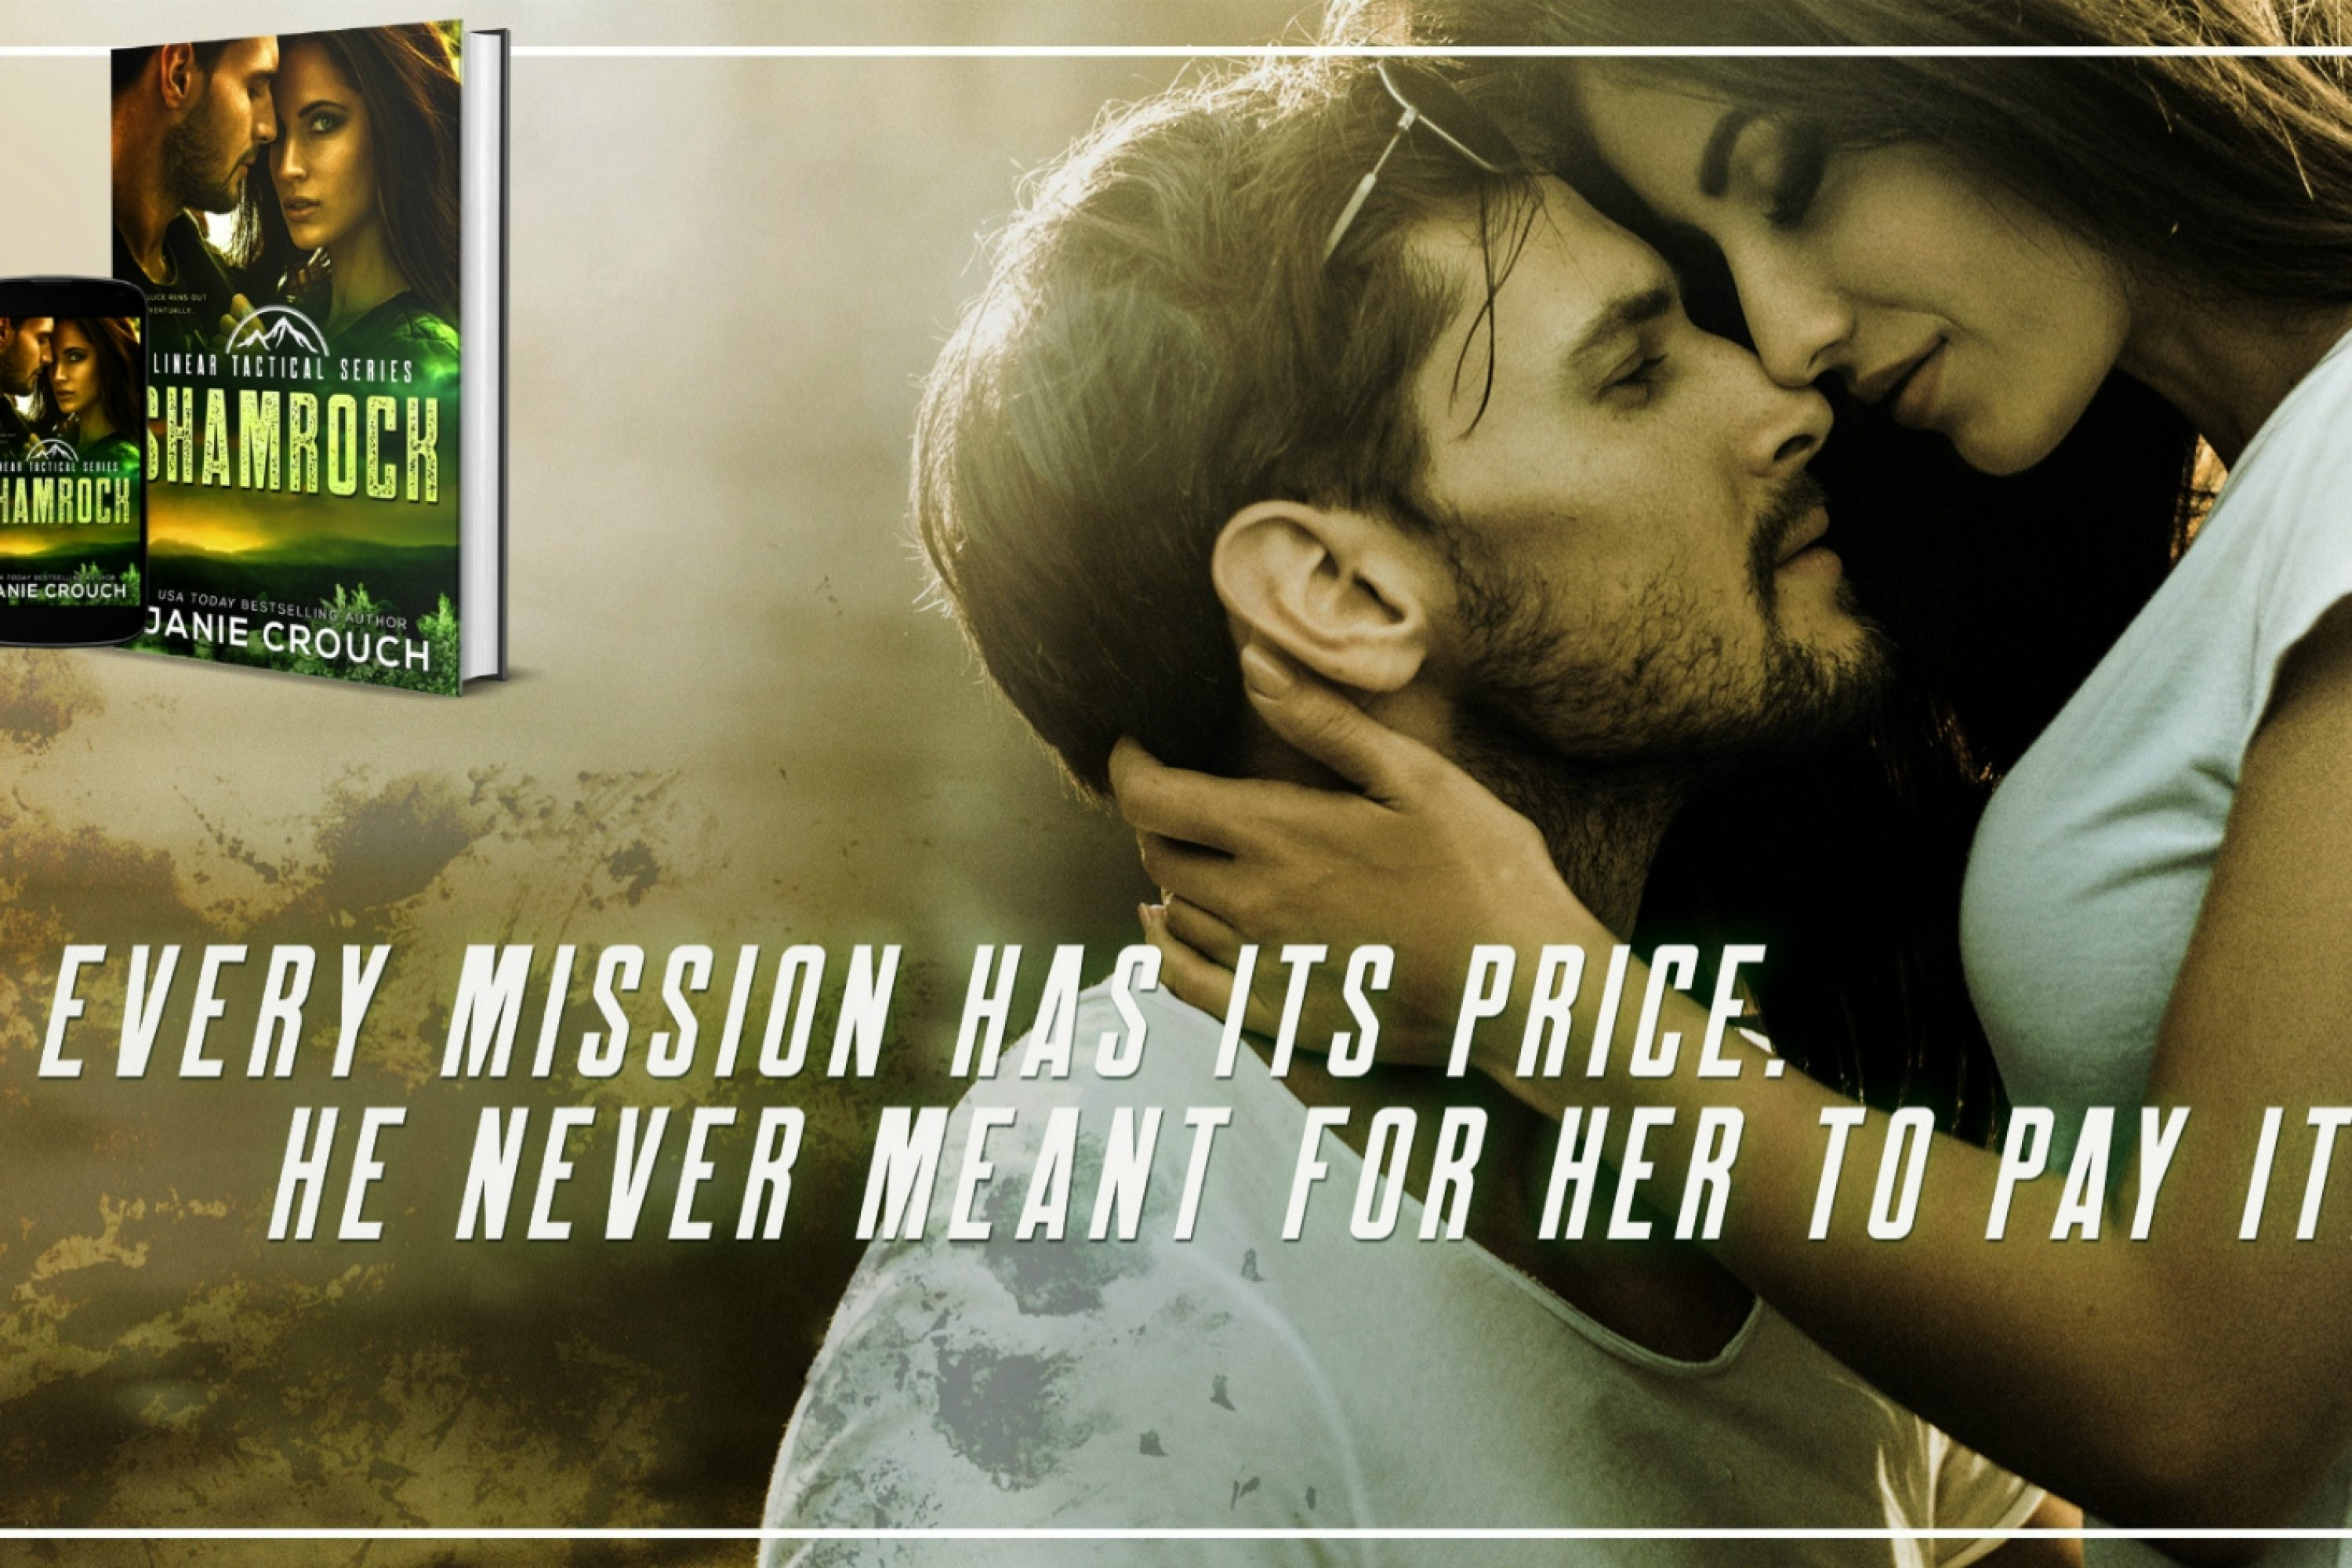 Teaser Reveal: Shamrock by Janie Crouch